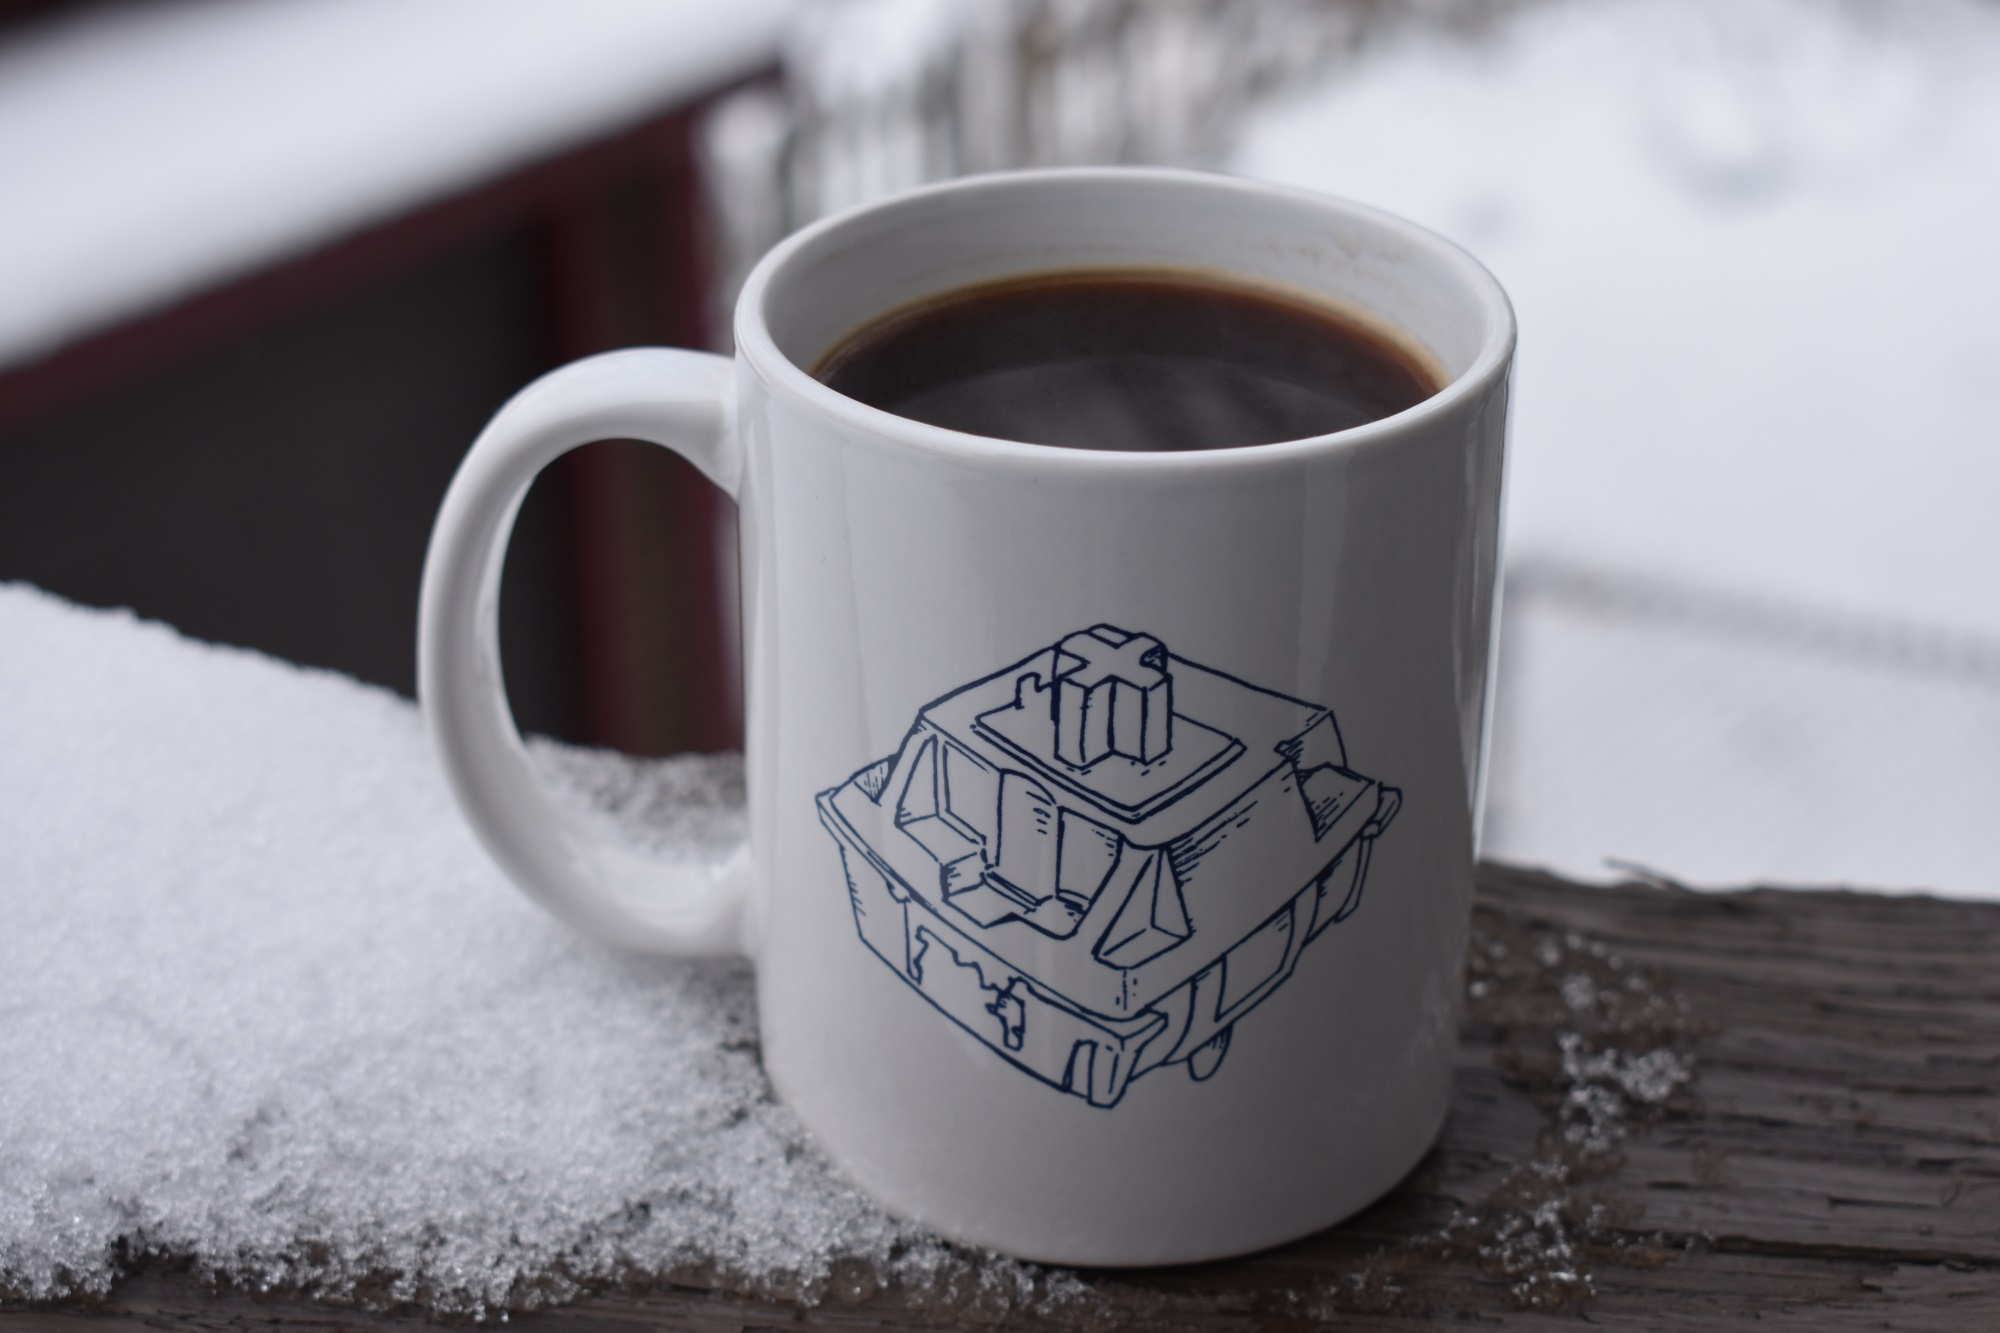 Cherry MX Switch Blueprint Mug